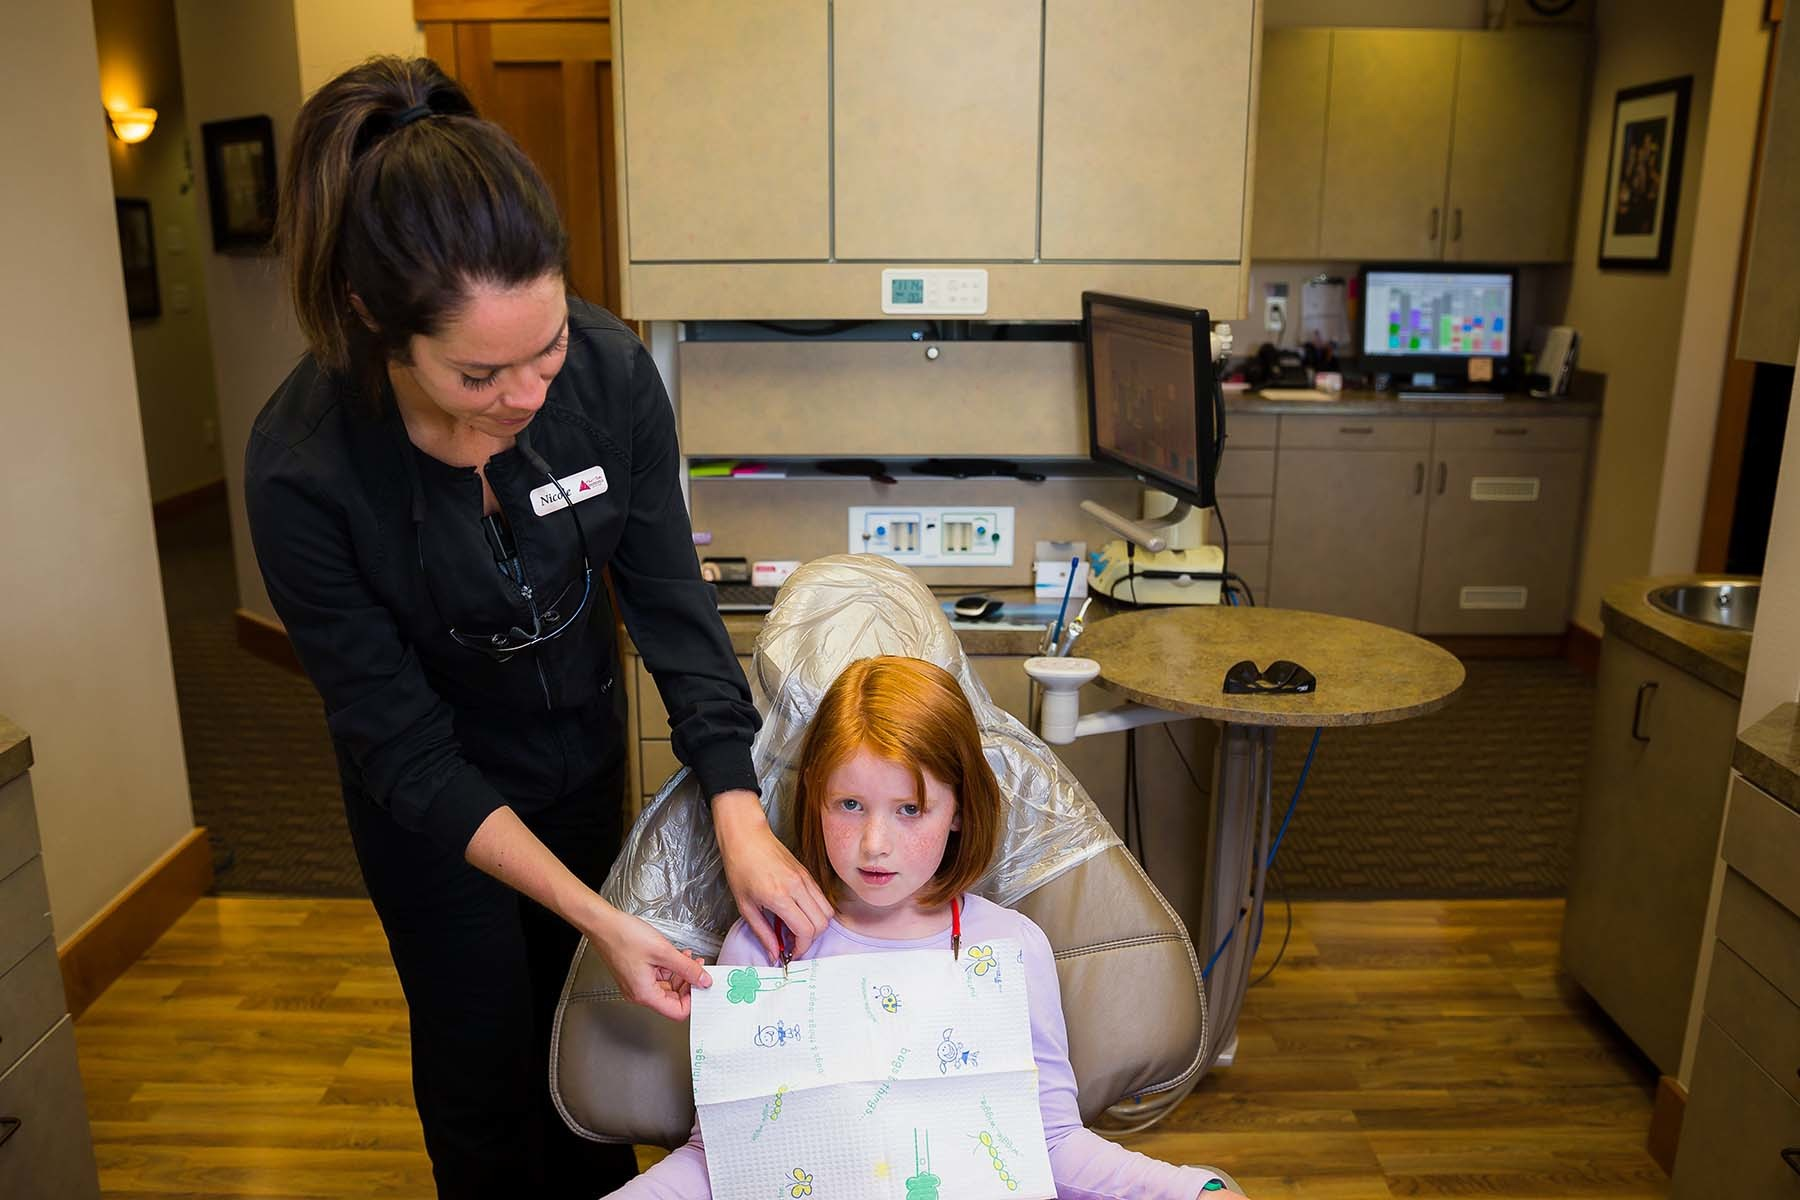 Nicole Helping A Child With Dental Exam